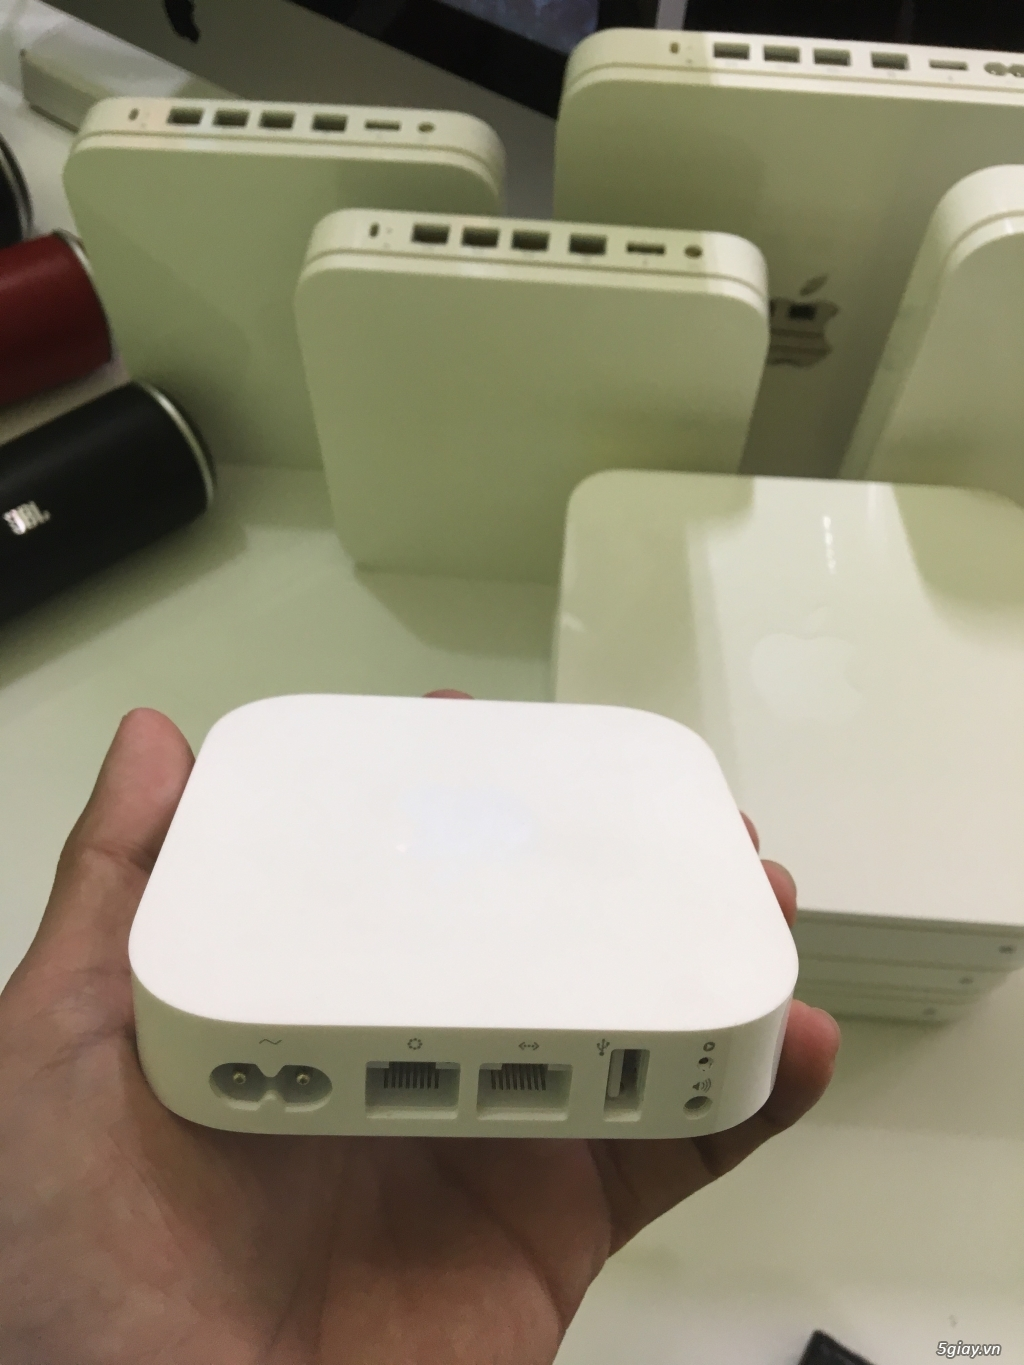 Thiết bị phát WIFI của Apple : Apple Airport Extreme - Airport Express - 22